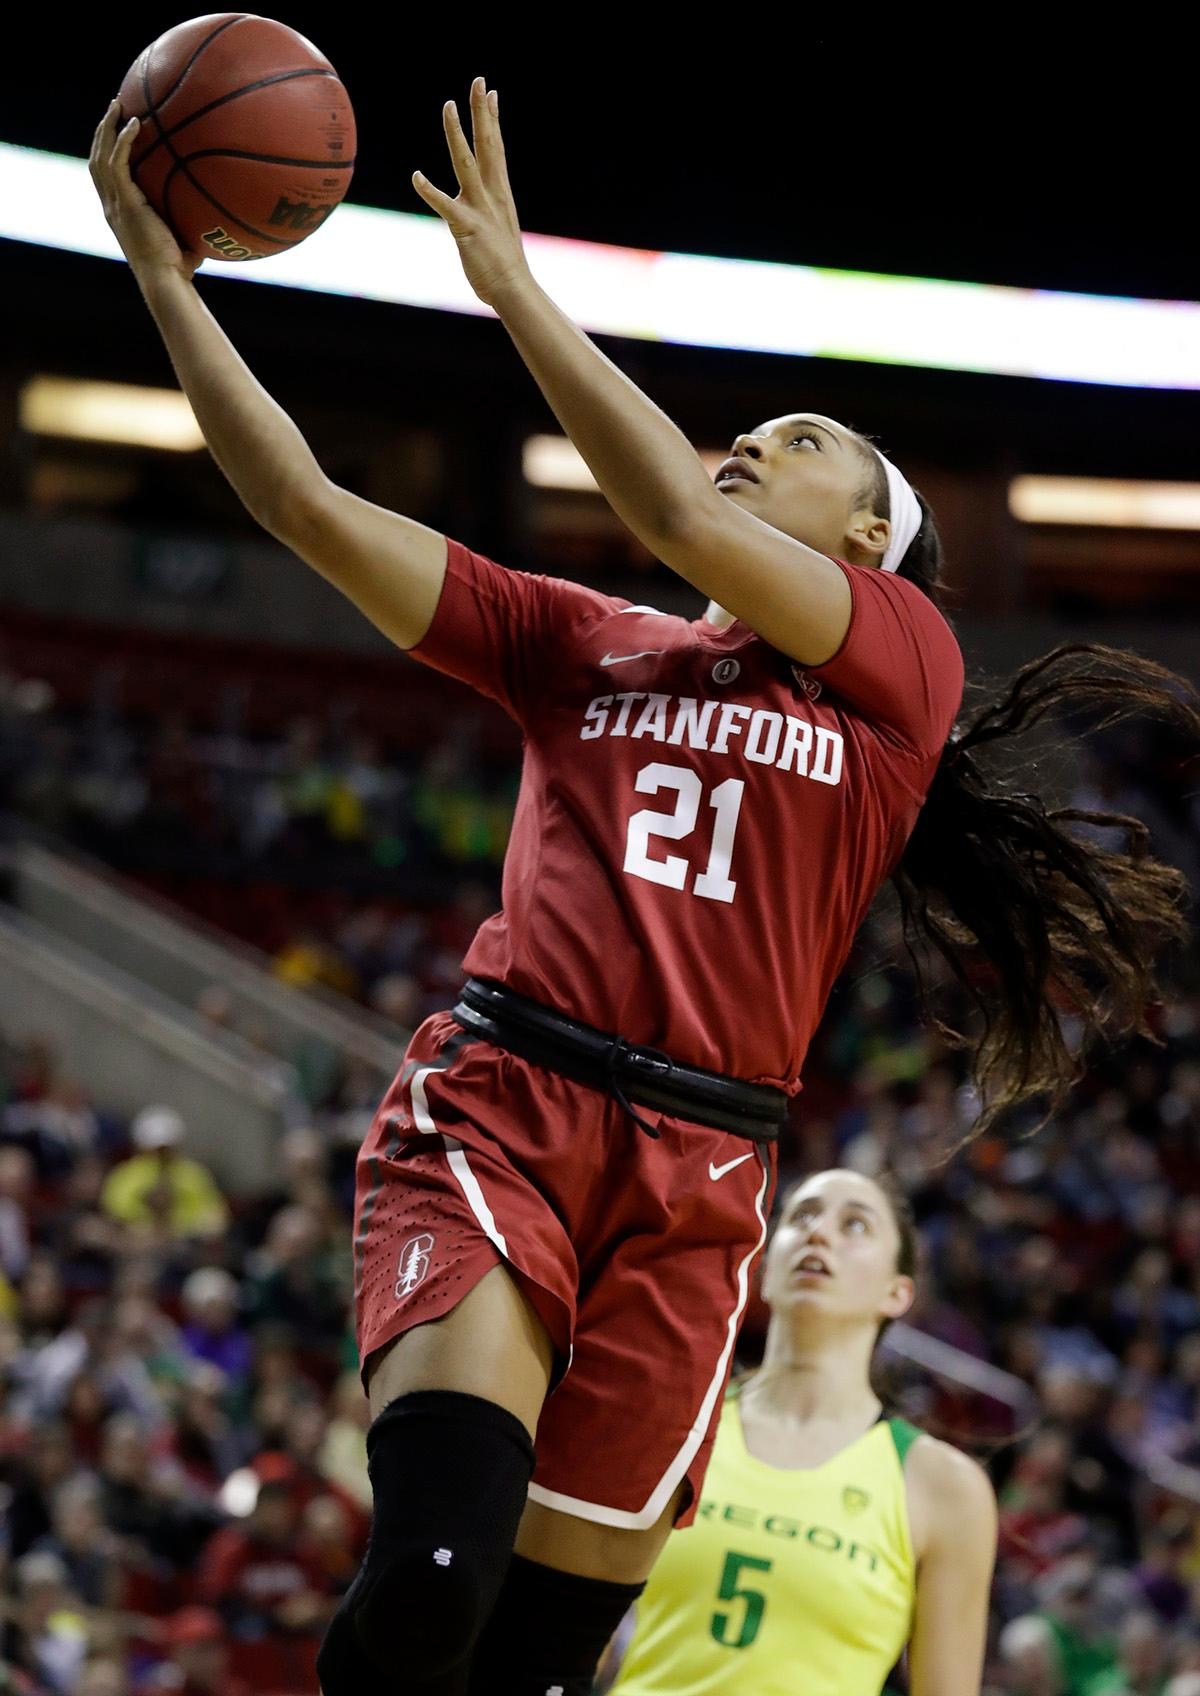 Stanford's Dijonai Carrington shoots past Oregon's Maite Cazorla during the first half of an NCAA college basketball game in the finals of the Pac-12 Conference women's tournament, Sunday, March 4, 2018, in Seattle. (AP Photo/Elaine Thompson)